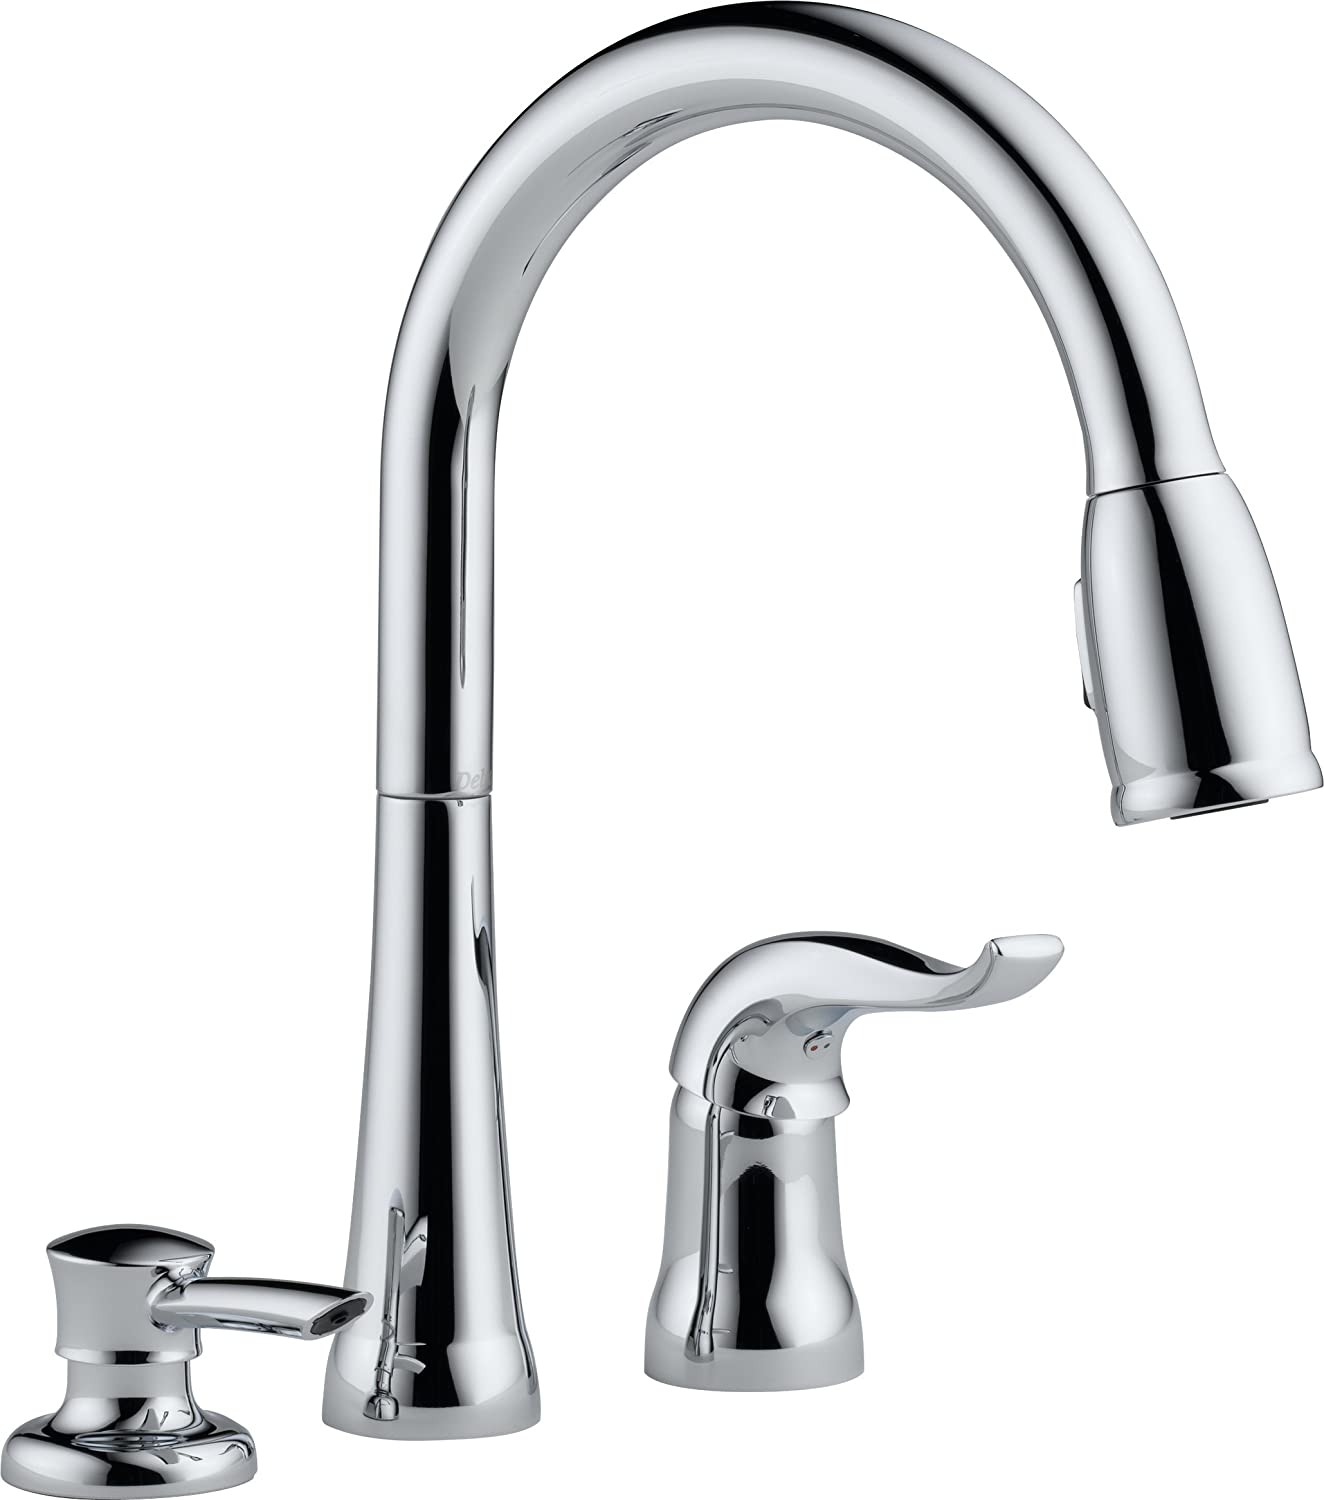 Delta 16970 SD DST Single Handle Pull Down Kitchen Faucet With Soap  Dispenser, Chrome   Touch On Kitchen Sink Faucets   Amazon.com